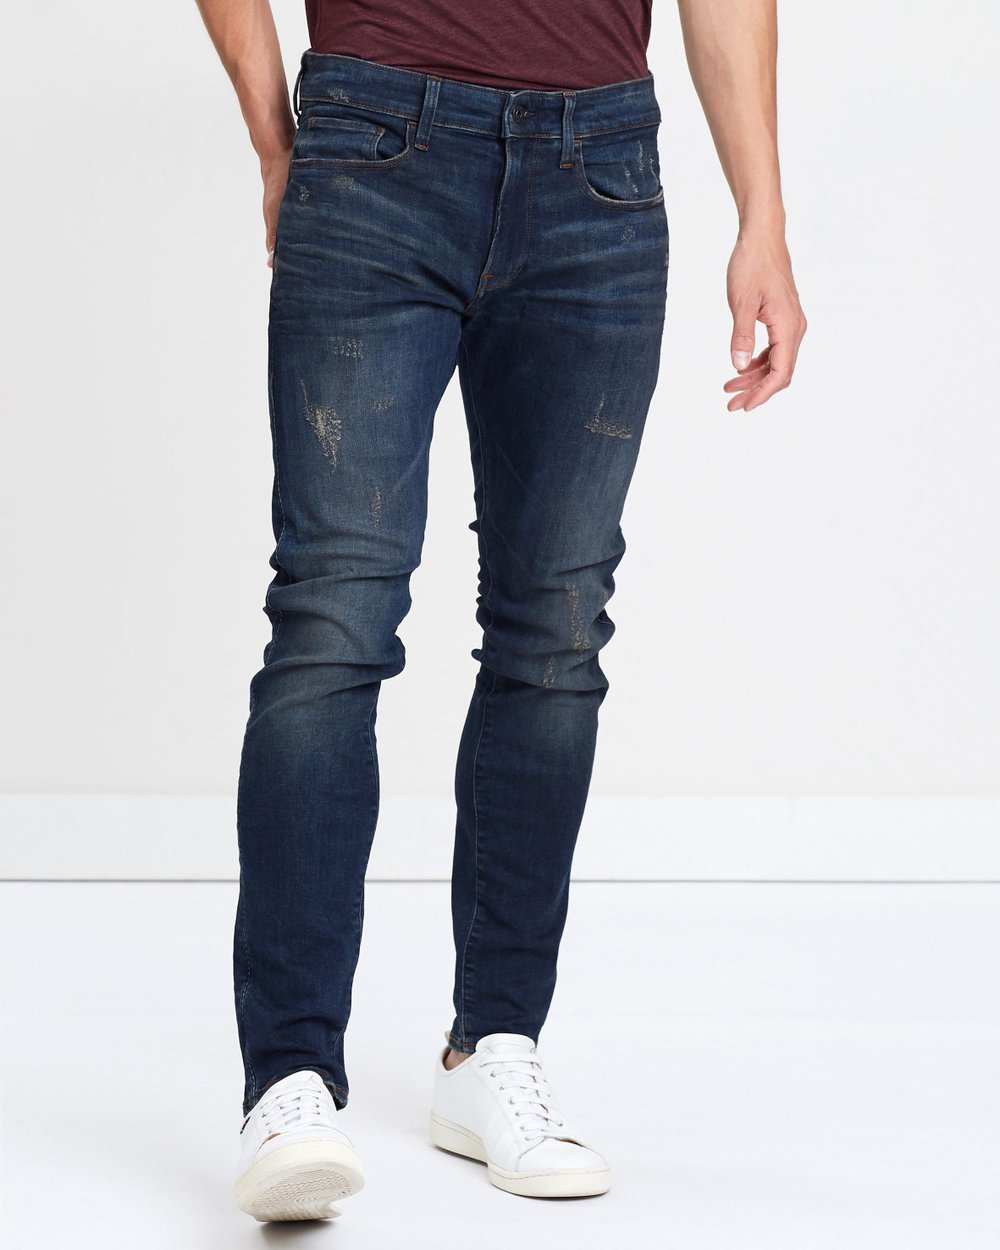 69980d05ec2 3301 Deconstructed Skinny Jeans by G-Star RAW Online | THE ICONIC |  Australia